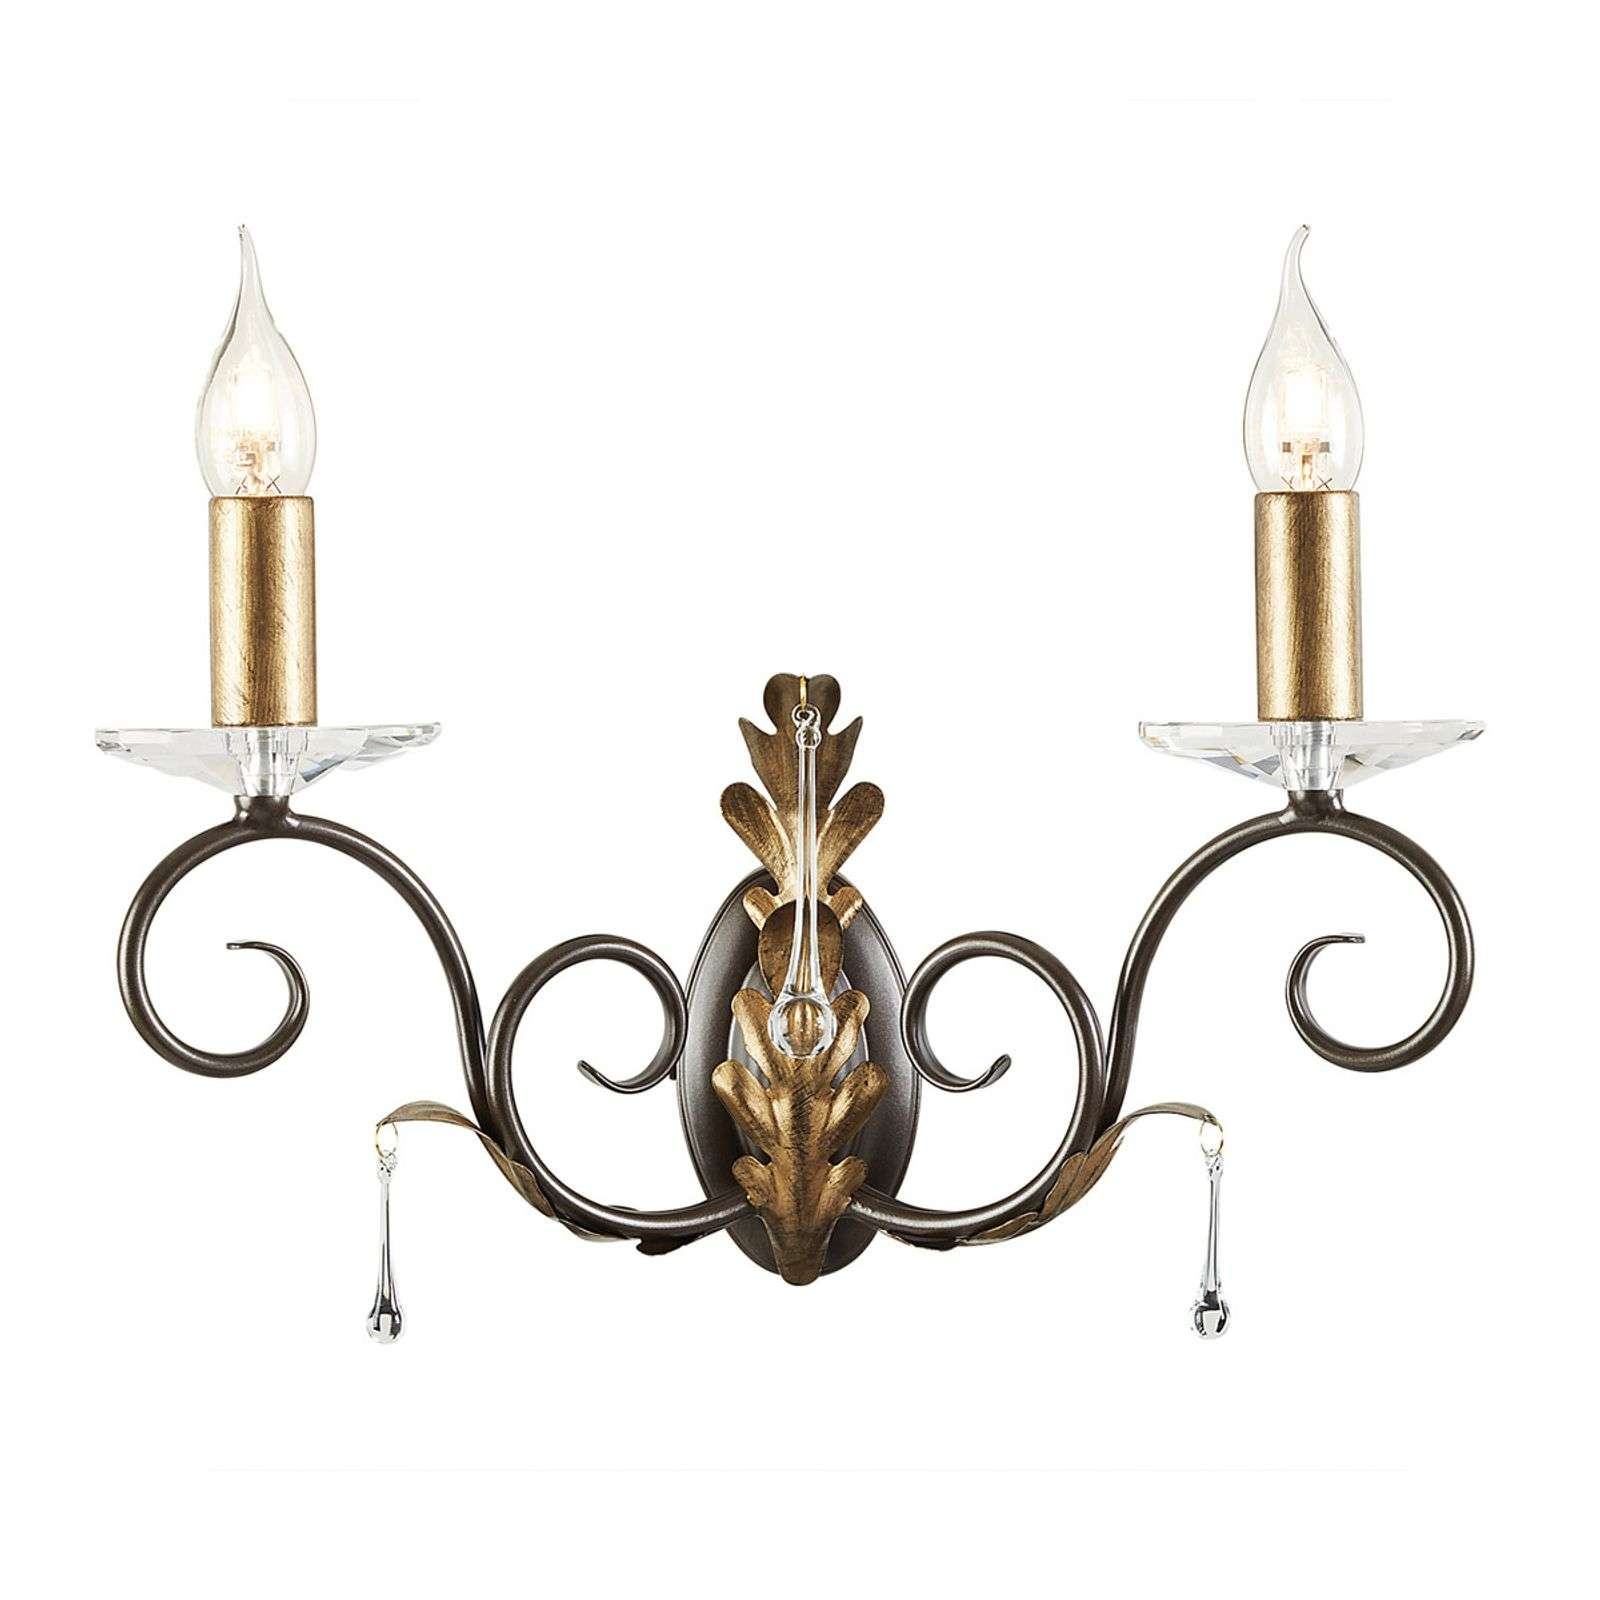 Belle applique Amarilli bronze à 2 lampes